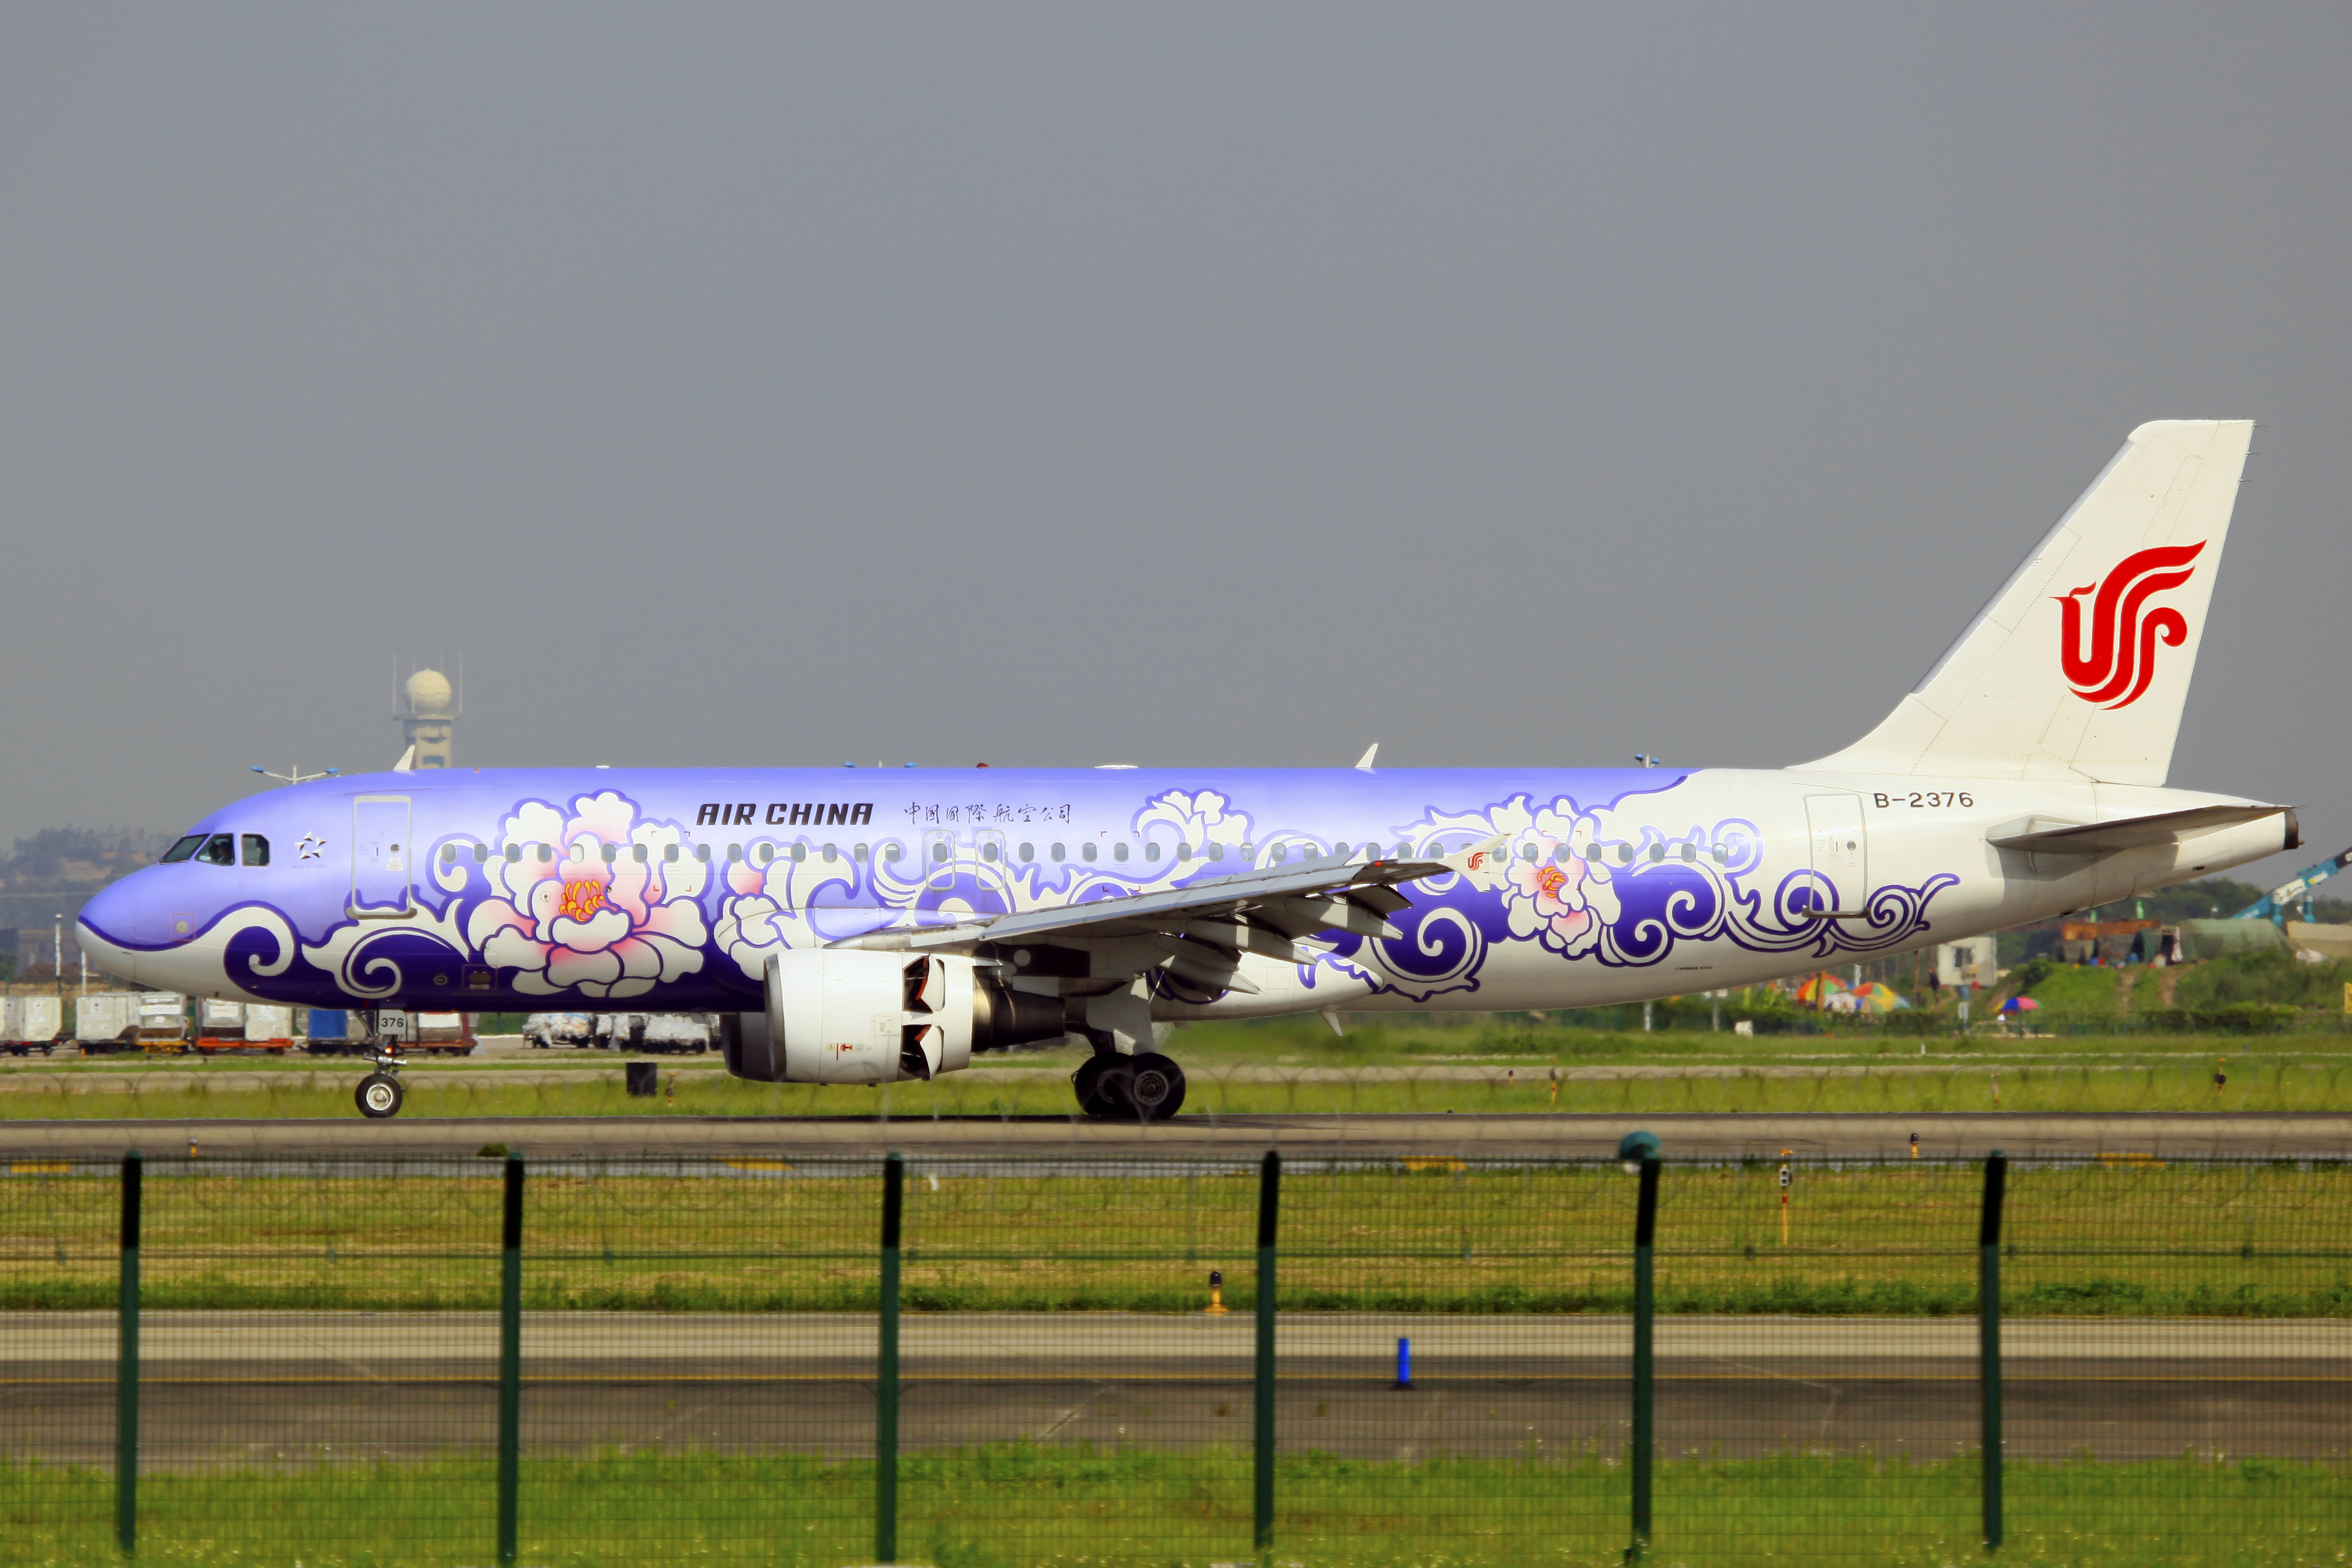 File:B-2376 - Air China - Airbus A320-214 - Purple Peony